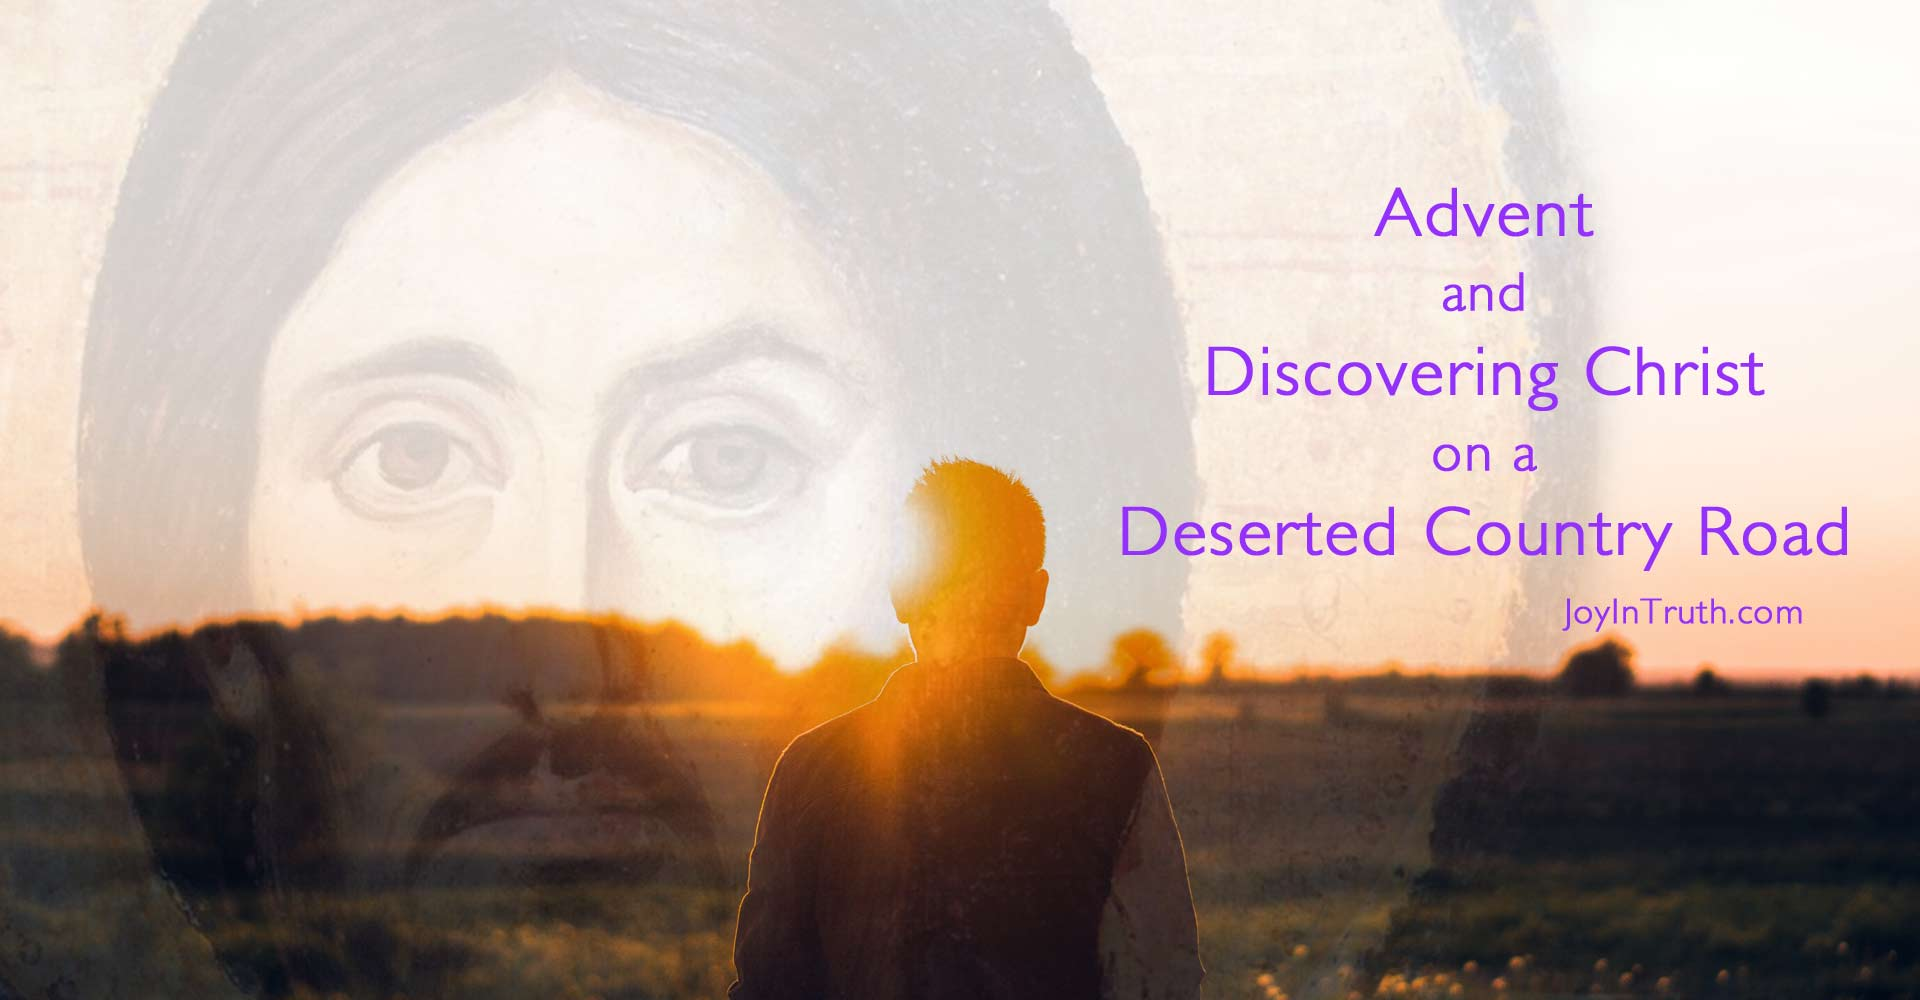 Advent and Discovering Christ on a Deserted Country Road